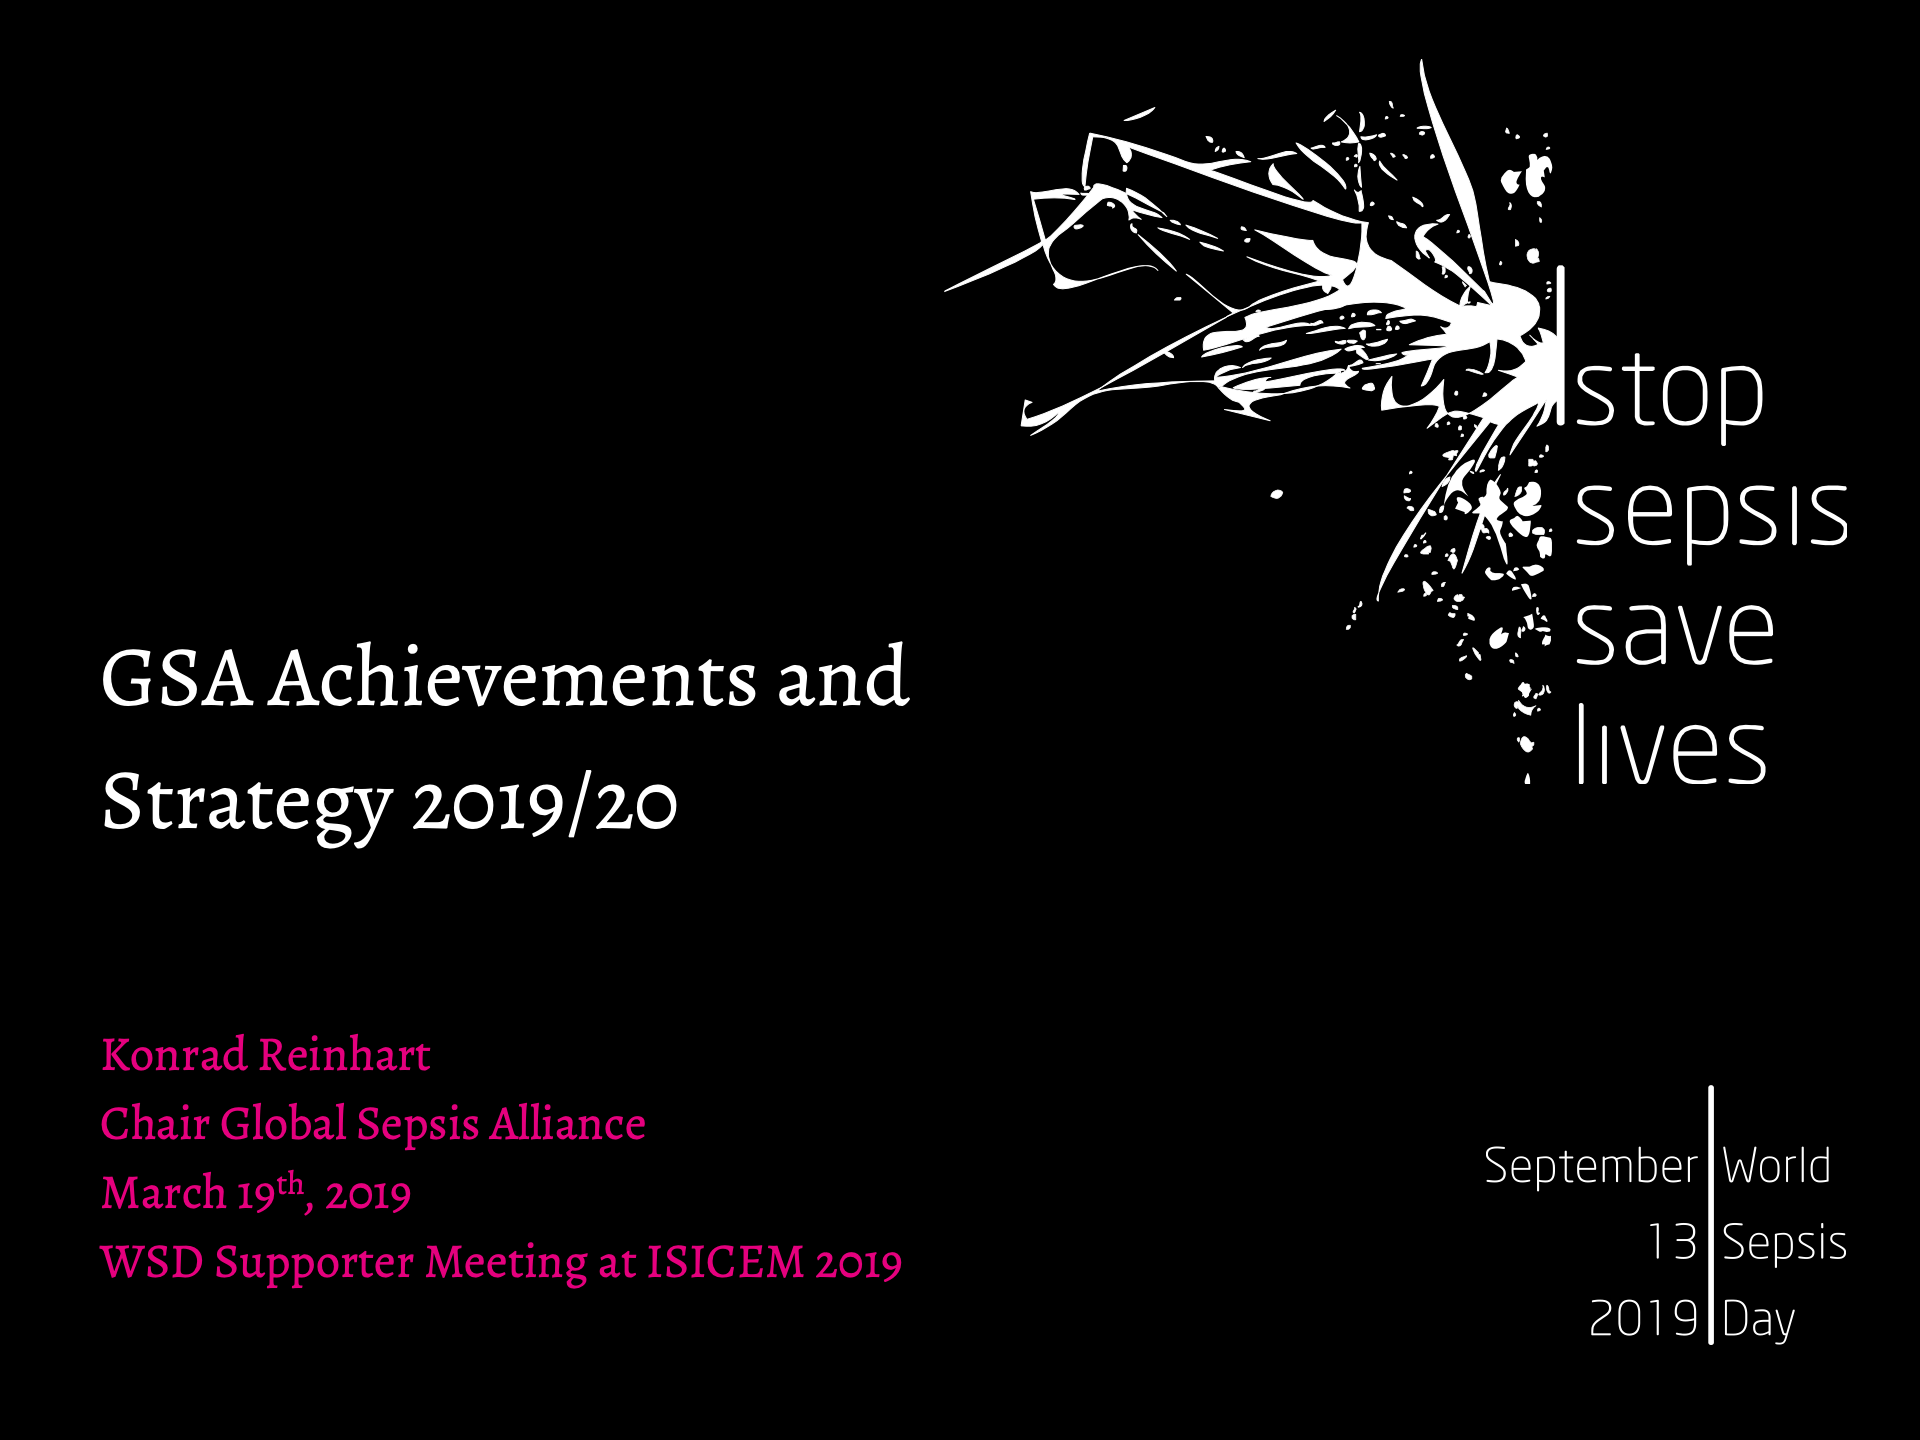 Achievements and Strategy for 2019 2020 1.png